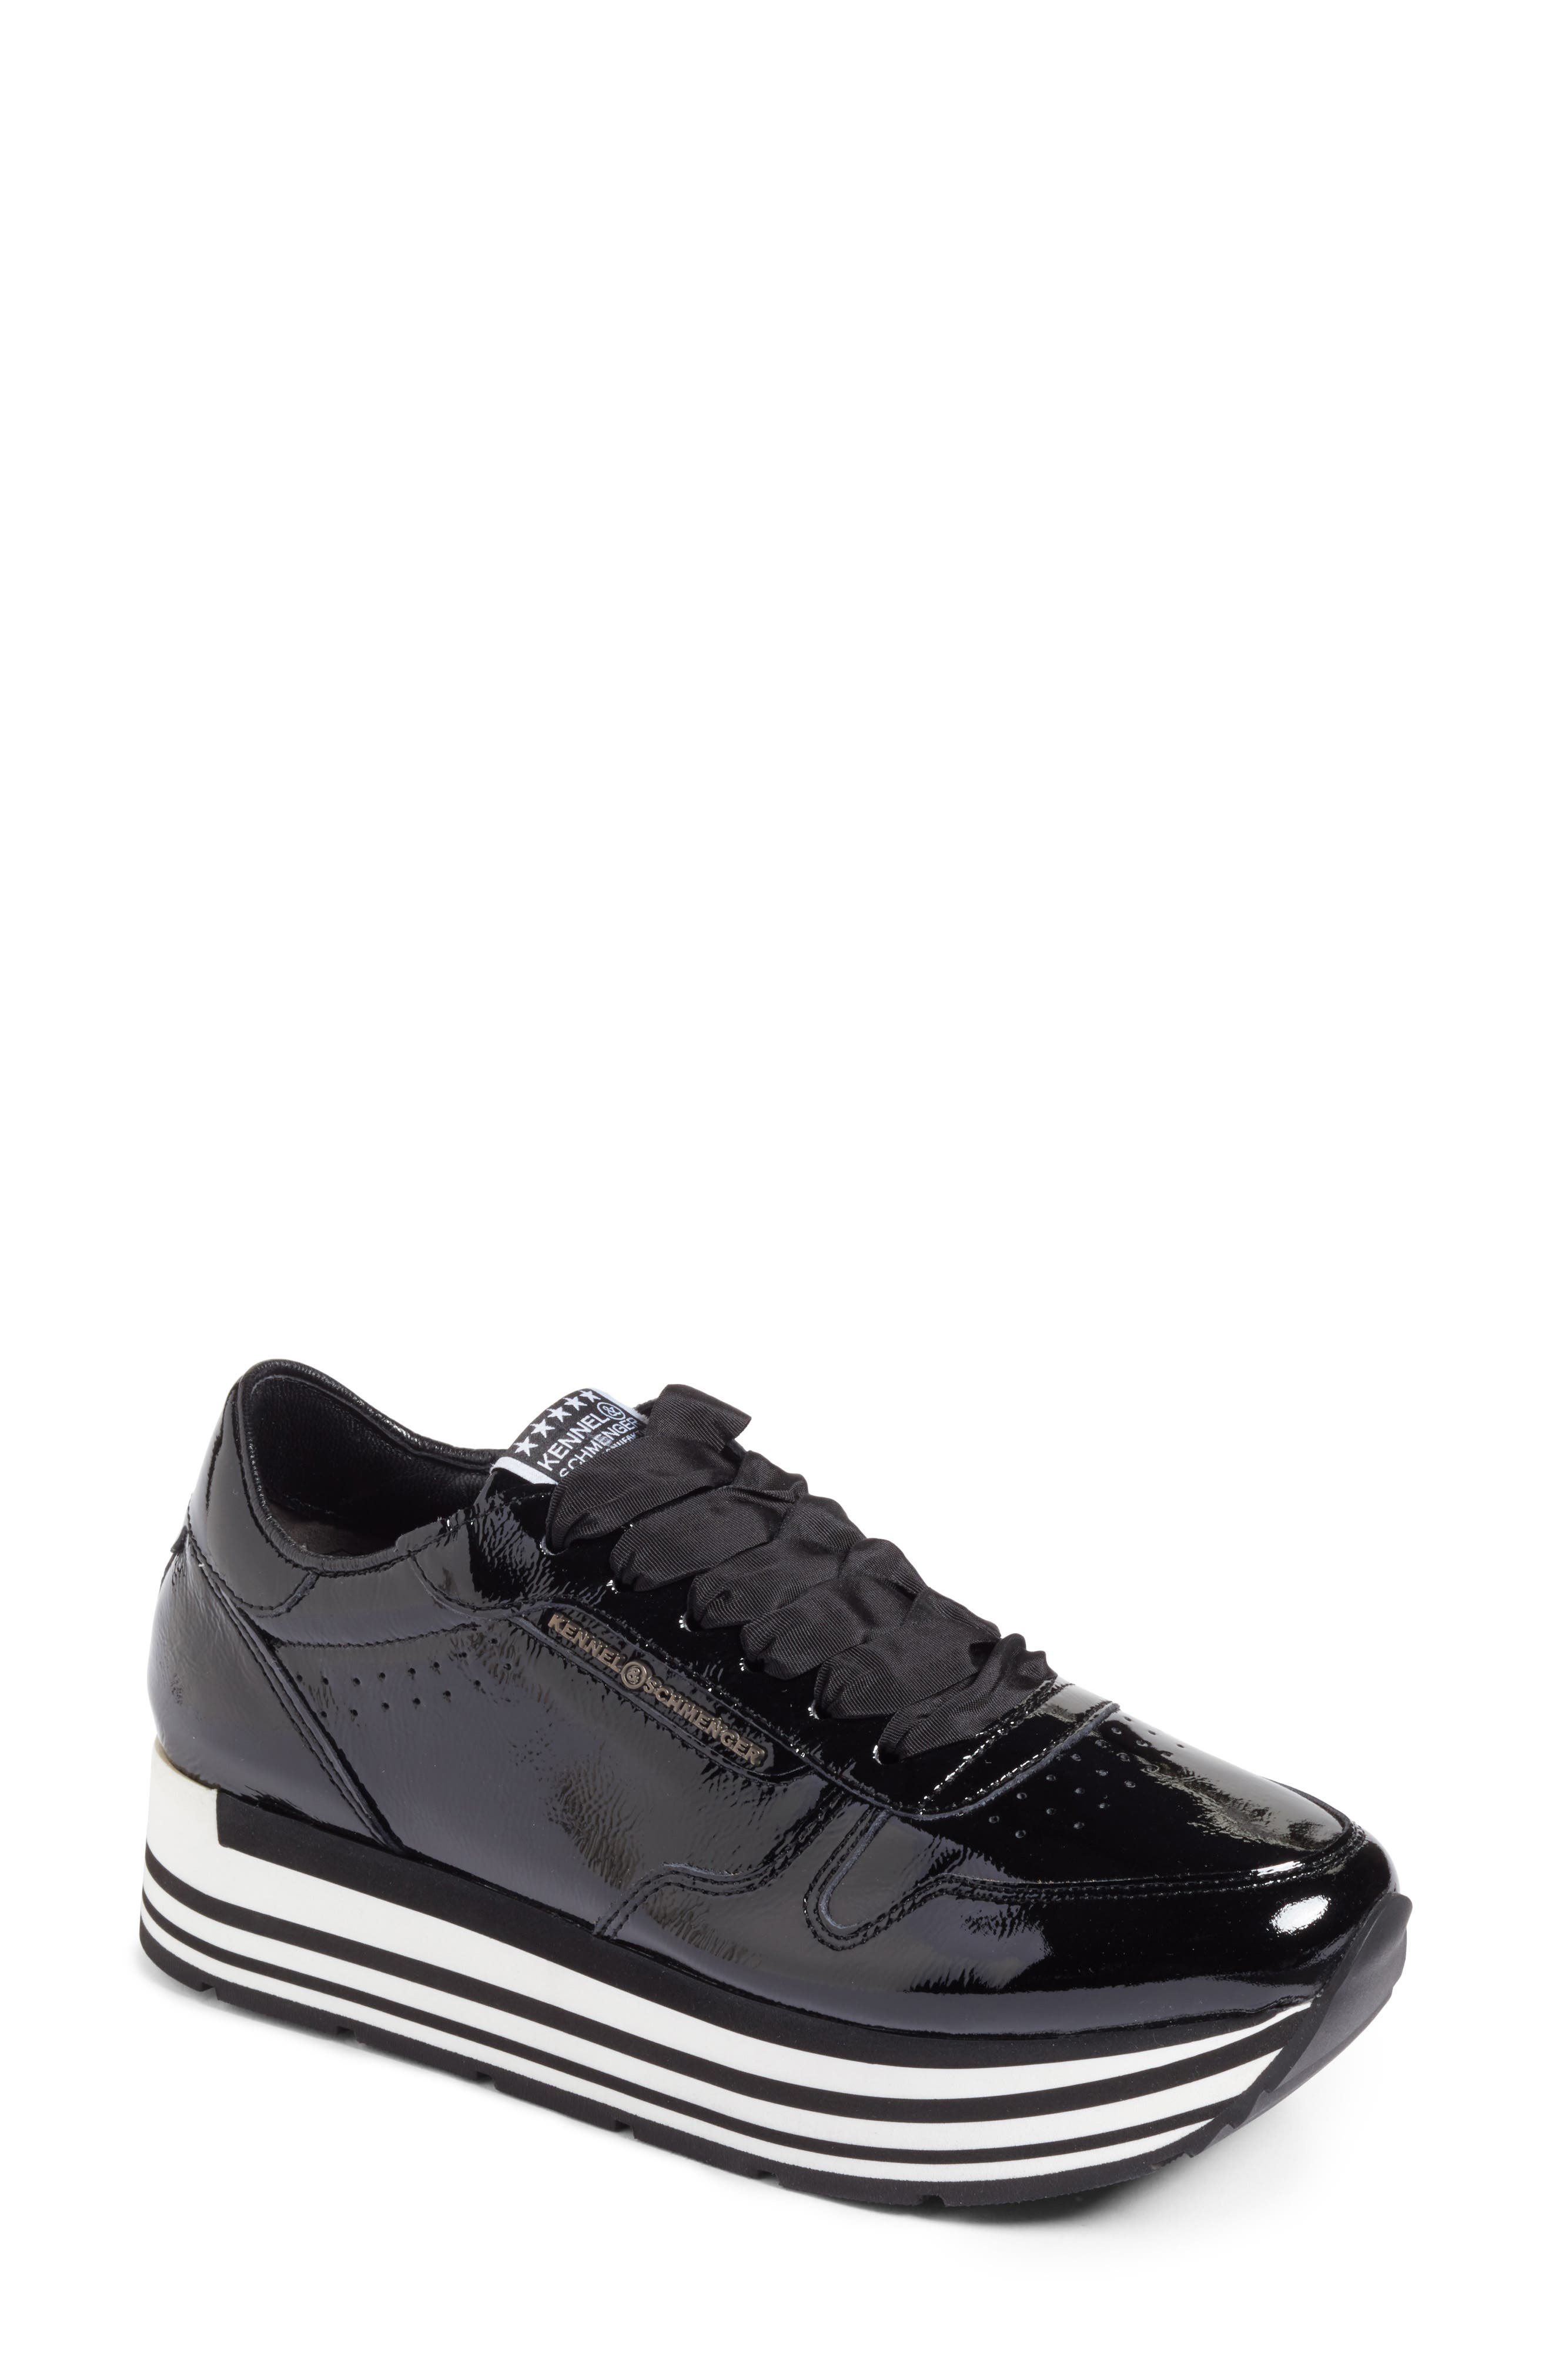 Kennel & Schmenger Nova Patent Leather Sneaker,                         Main,                         color, 001